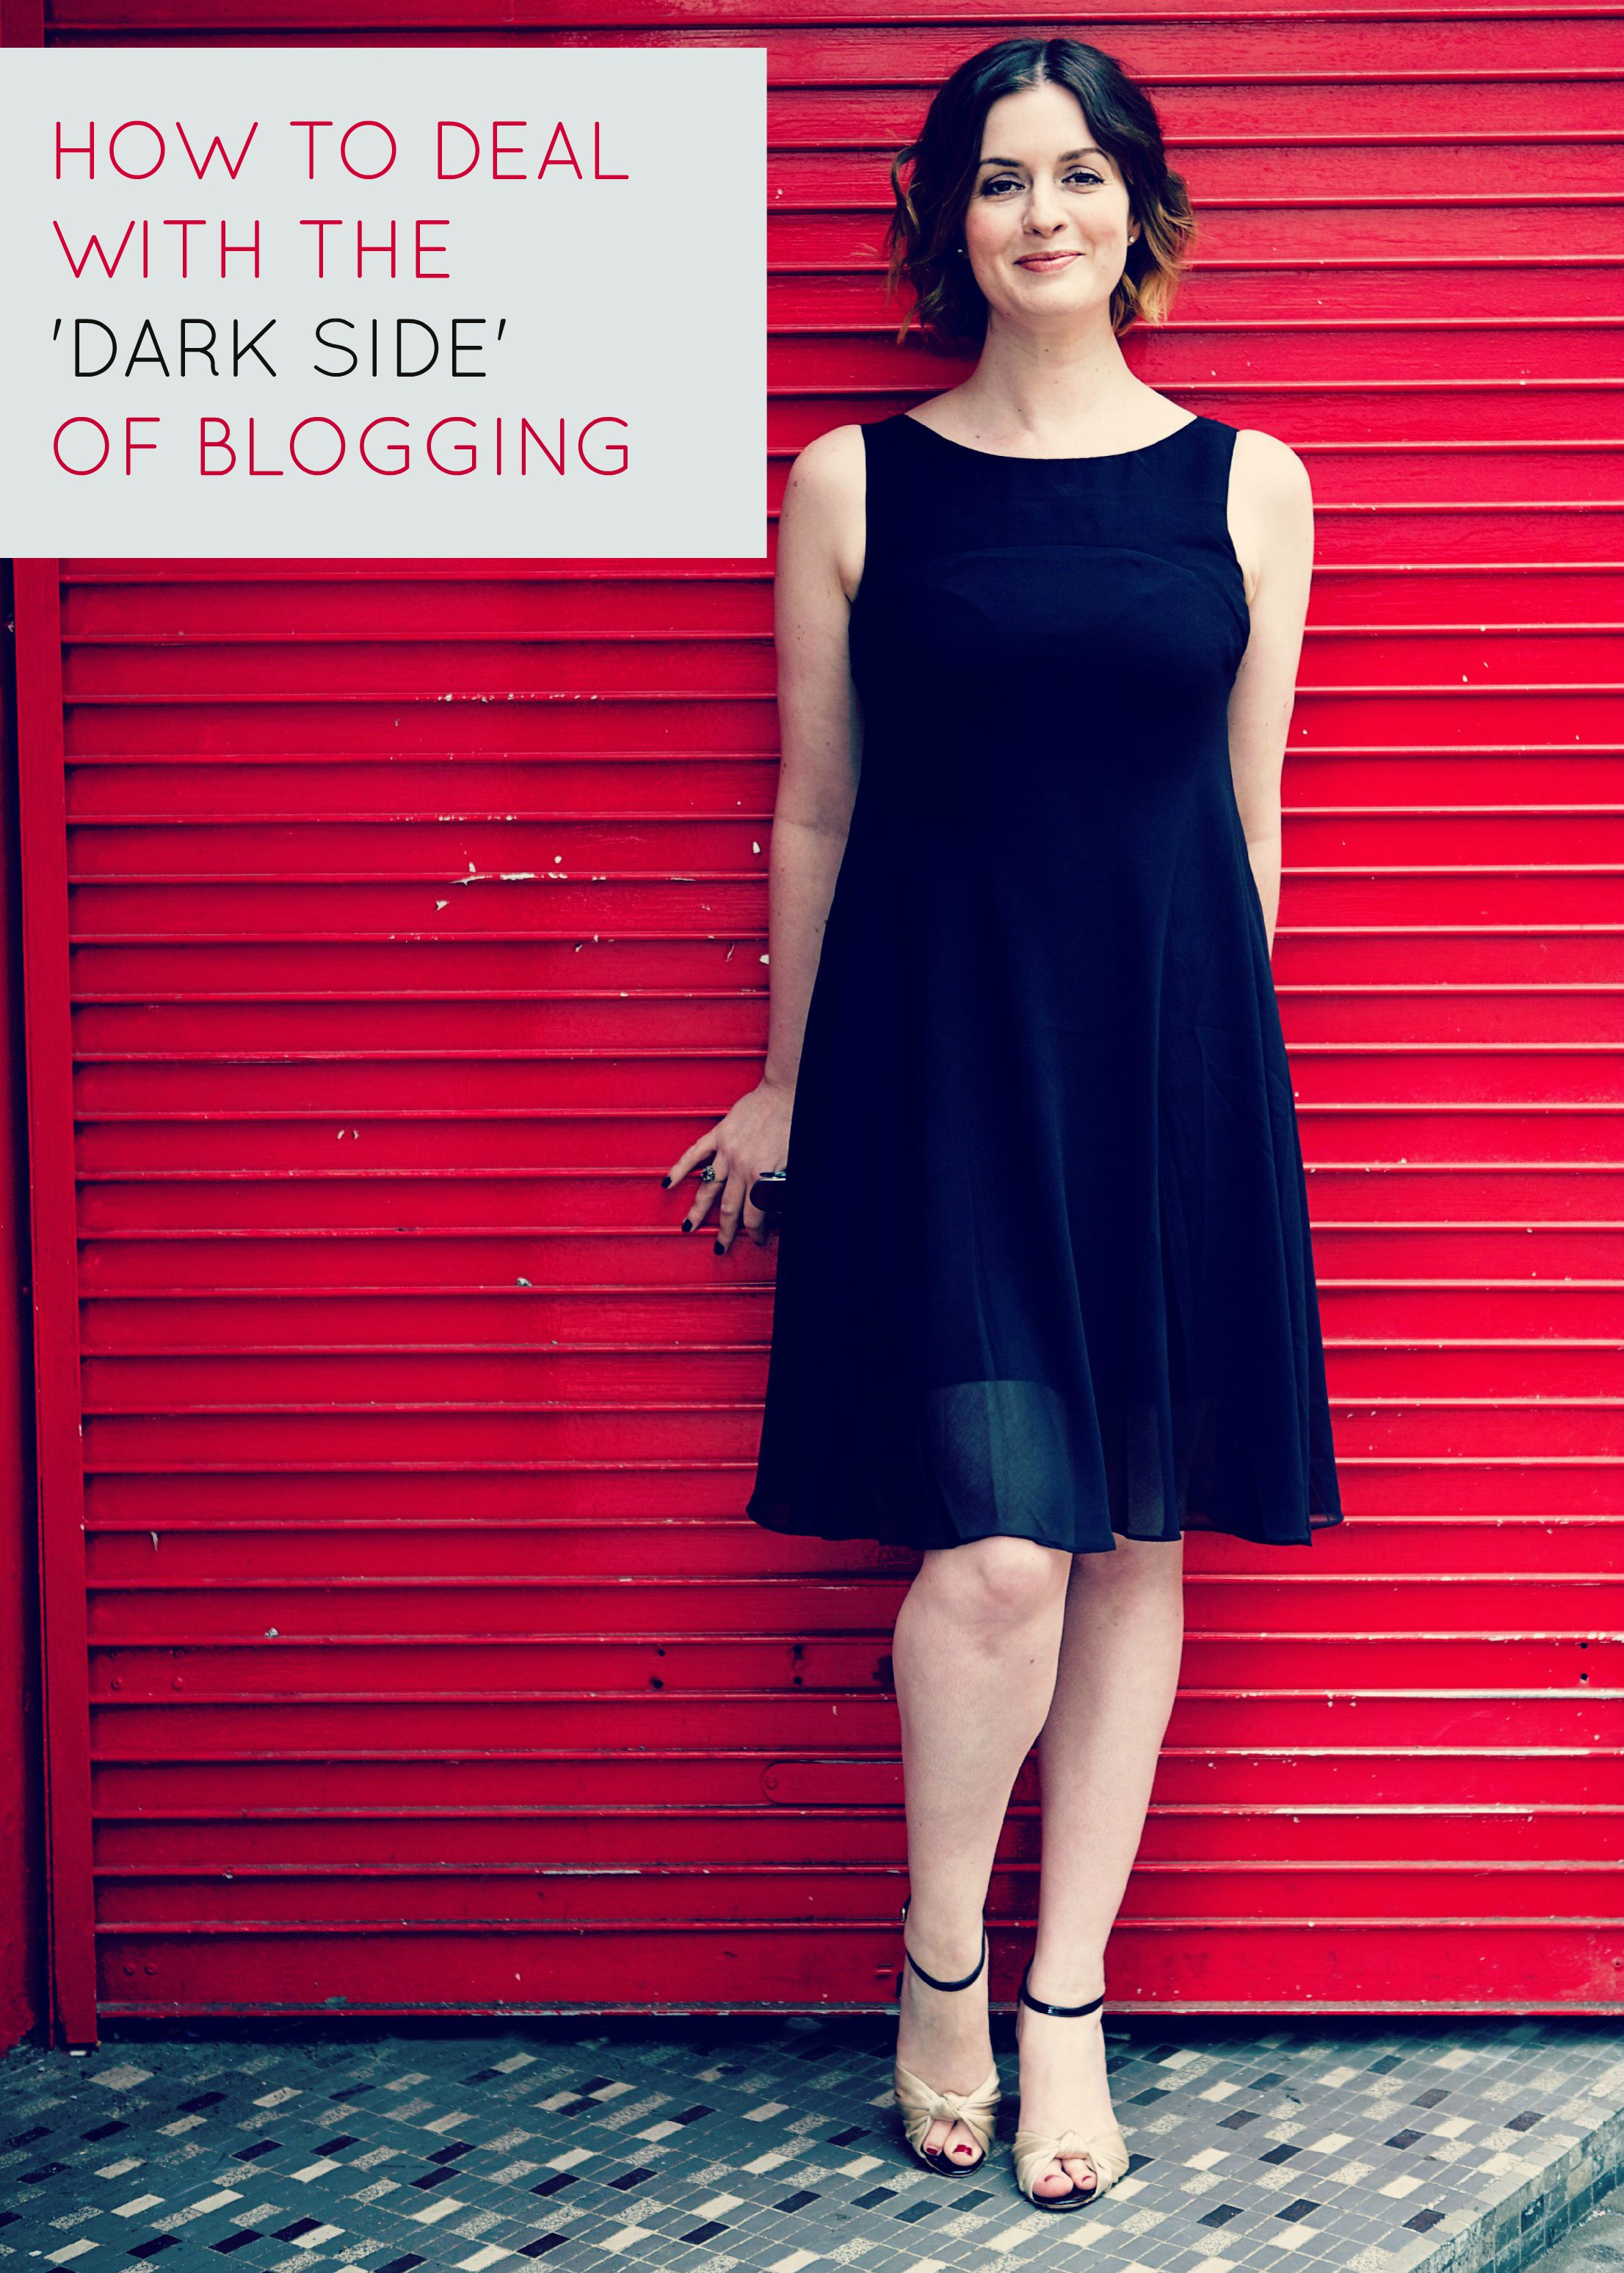 Dark side of blogging